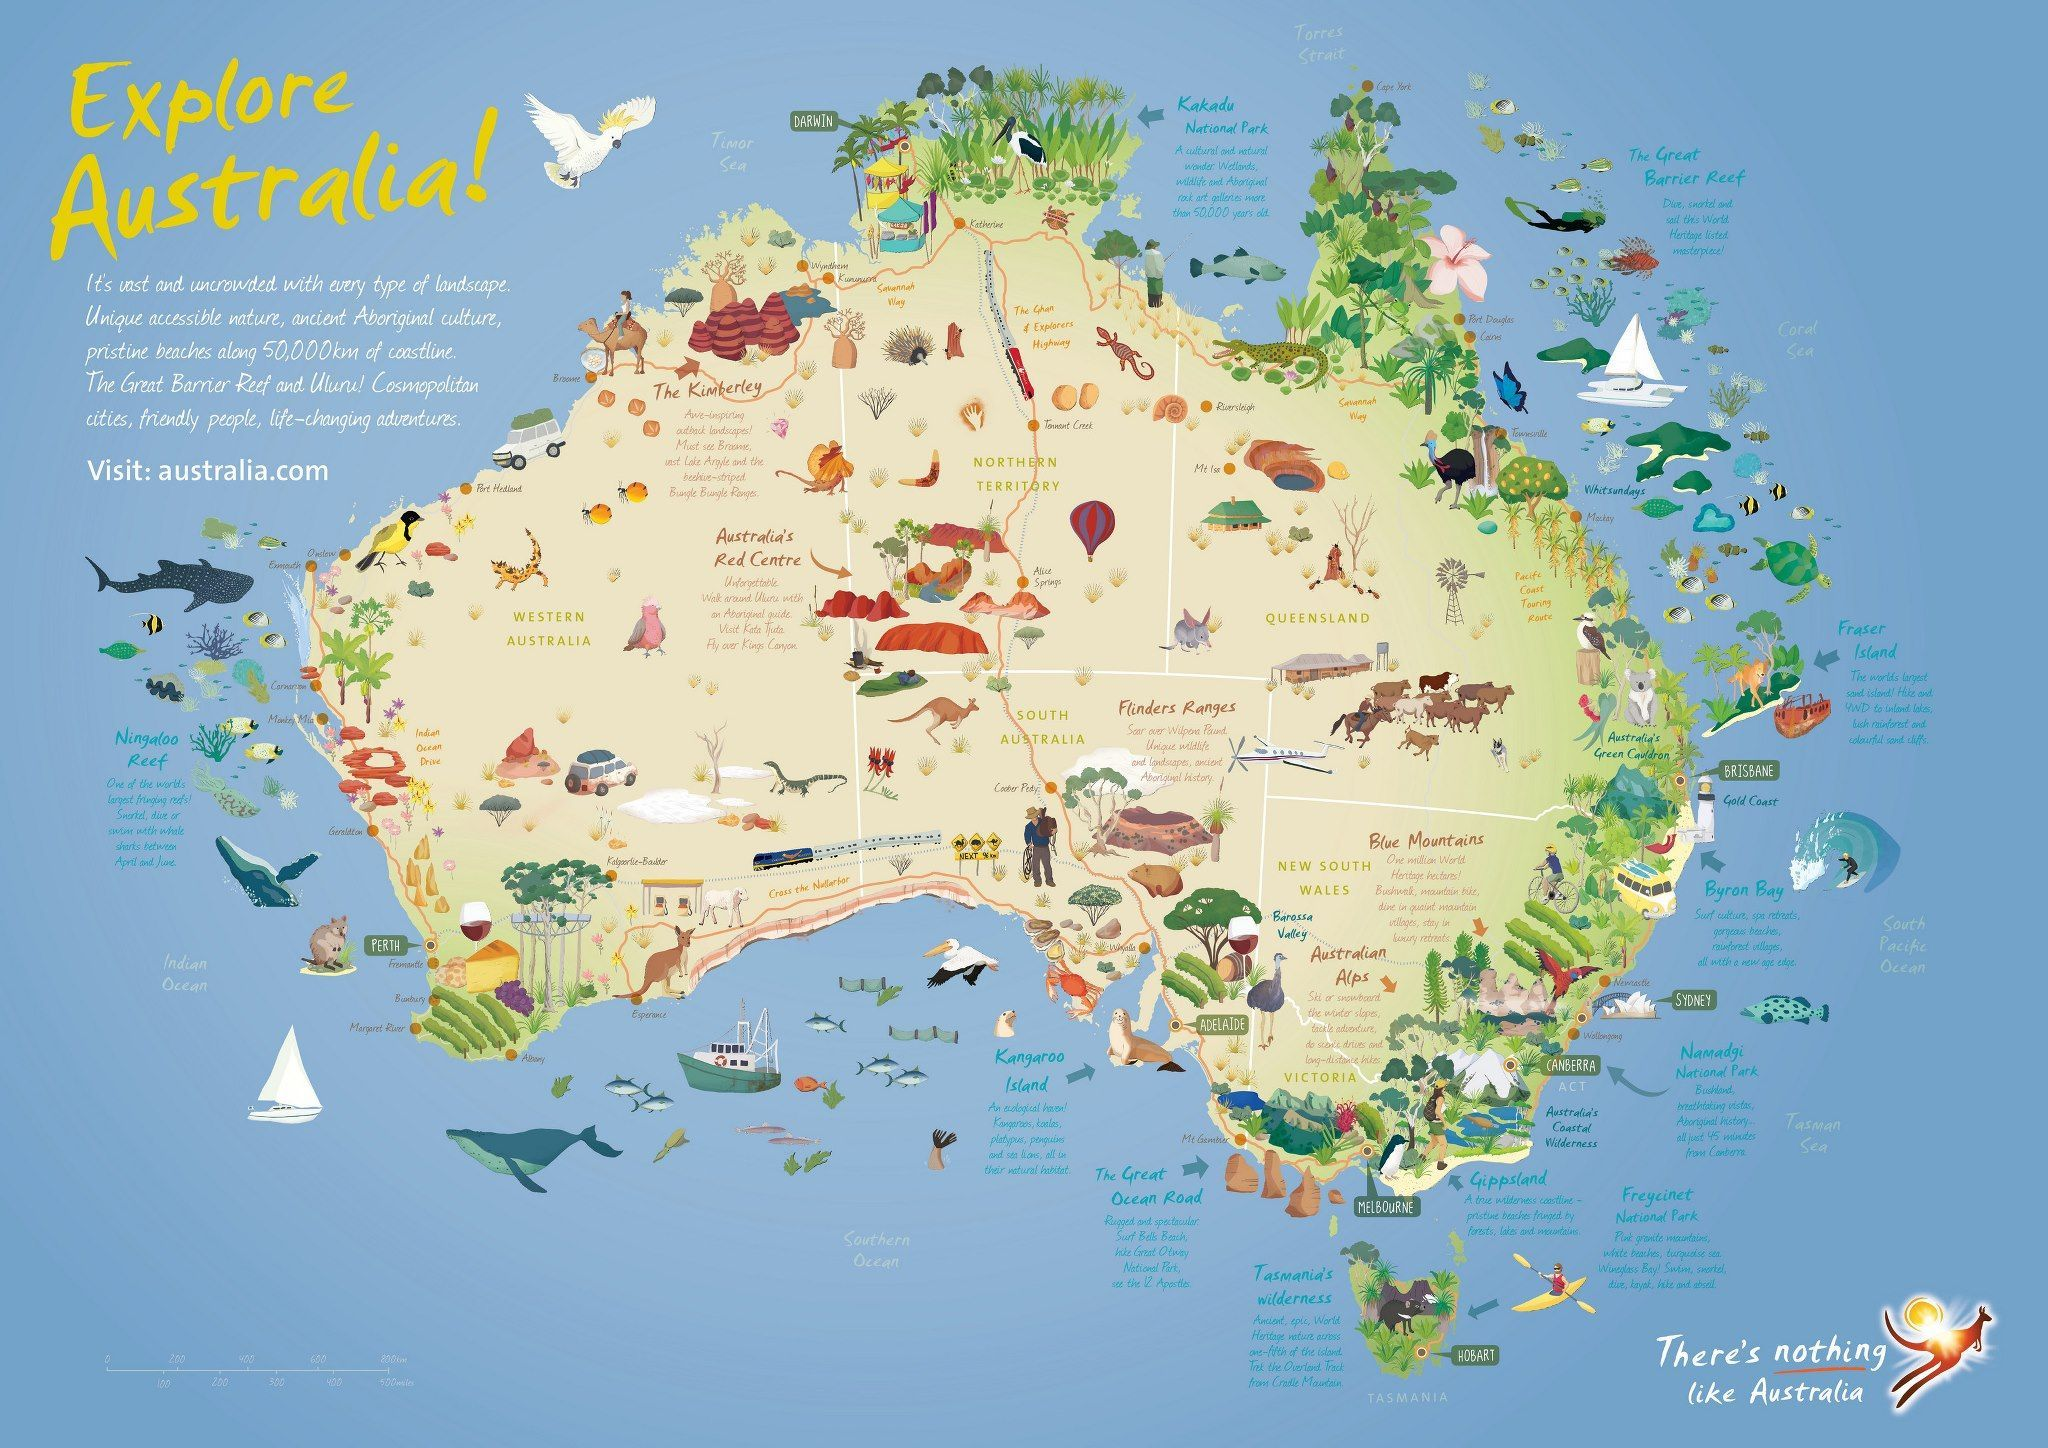 Map Showing Australia.Australia Travel Map Showing Key Features Attractions On The